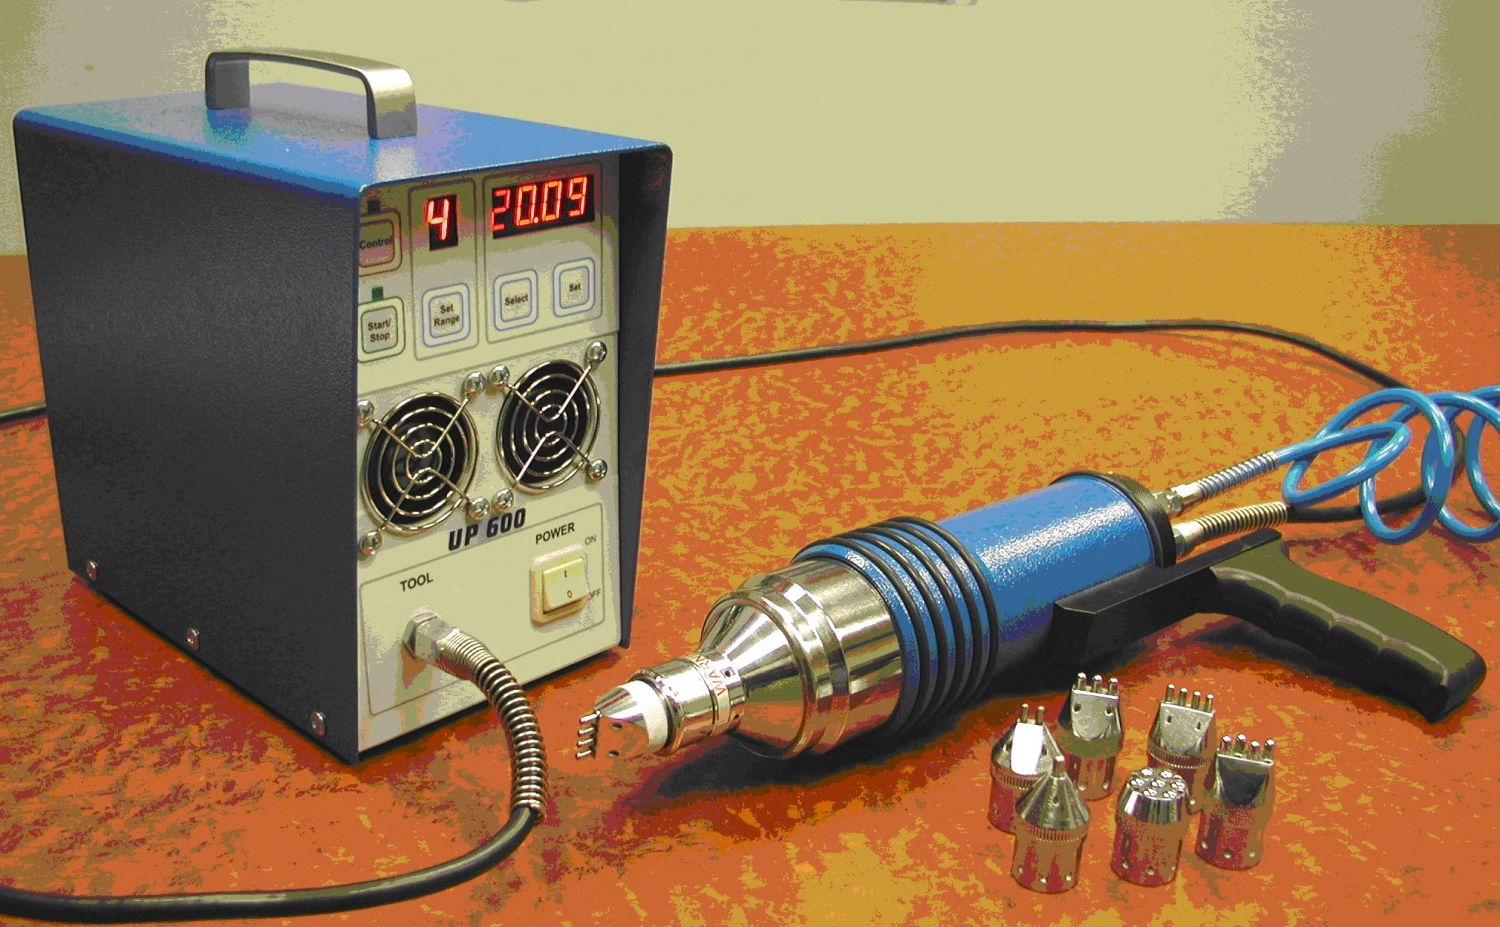 Basic ultrasonic peening system for fatigue life improvement of welded elements and structures